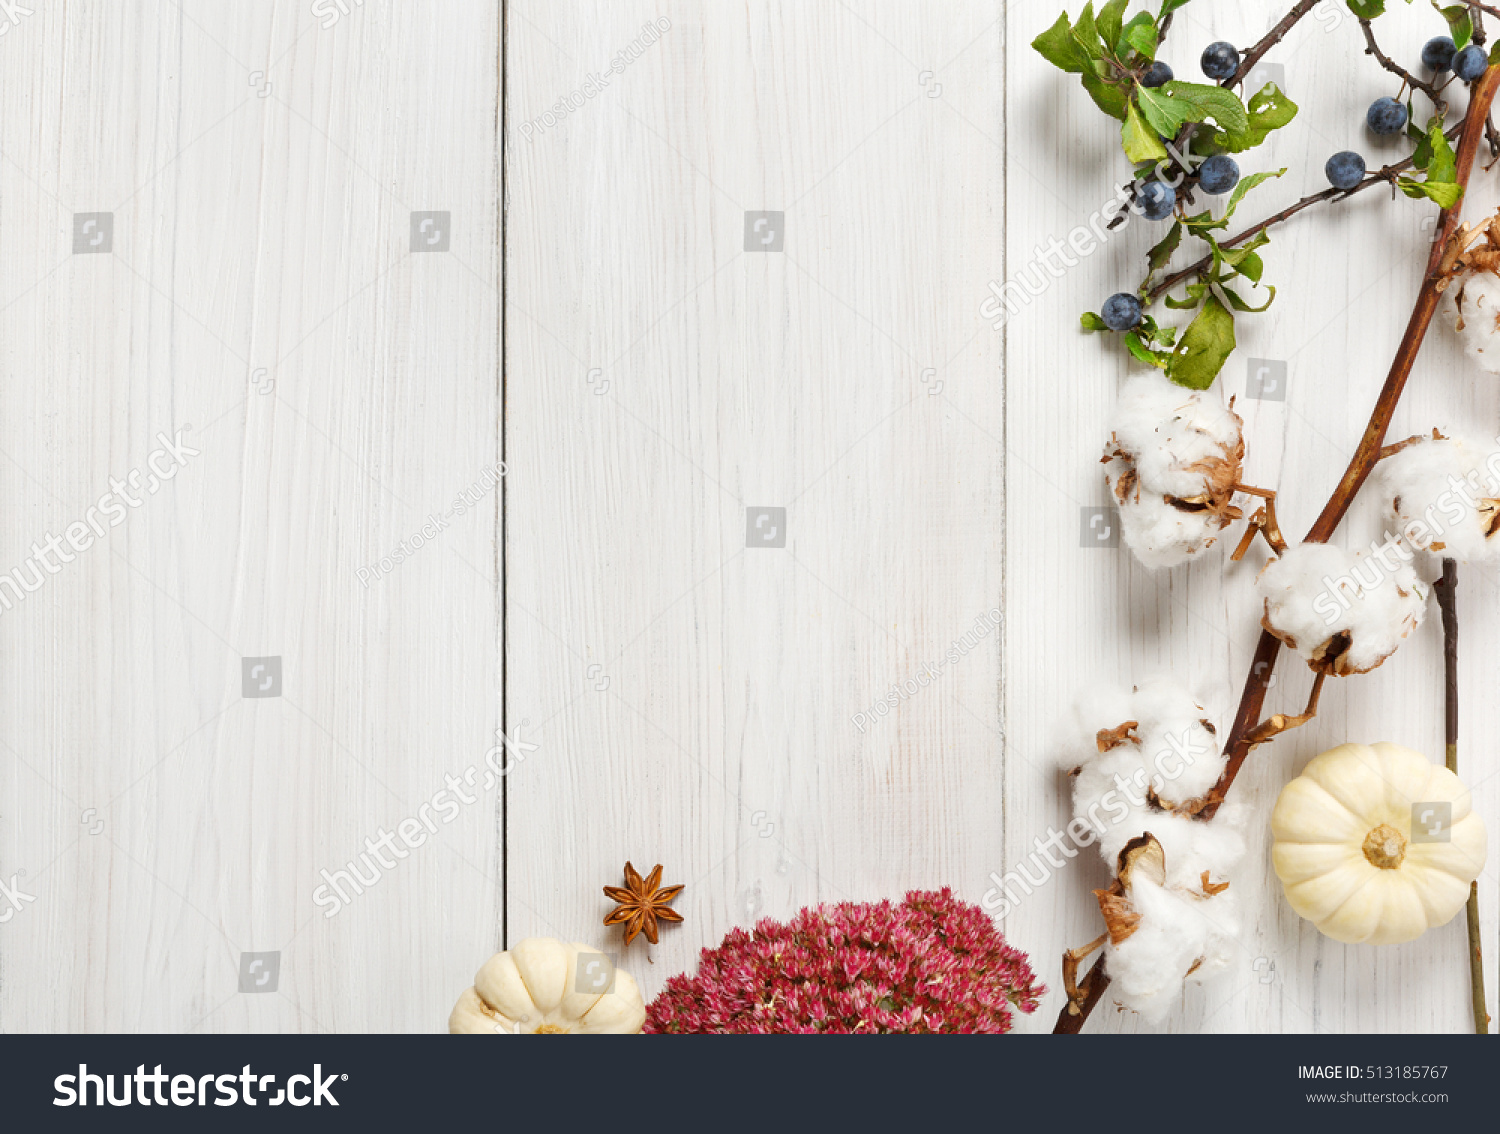 Autumn Composition Background Border Made Of Dried Fall Flowers Branches And Leaves